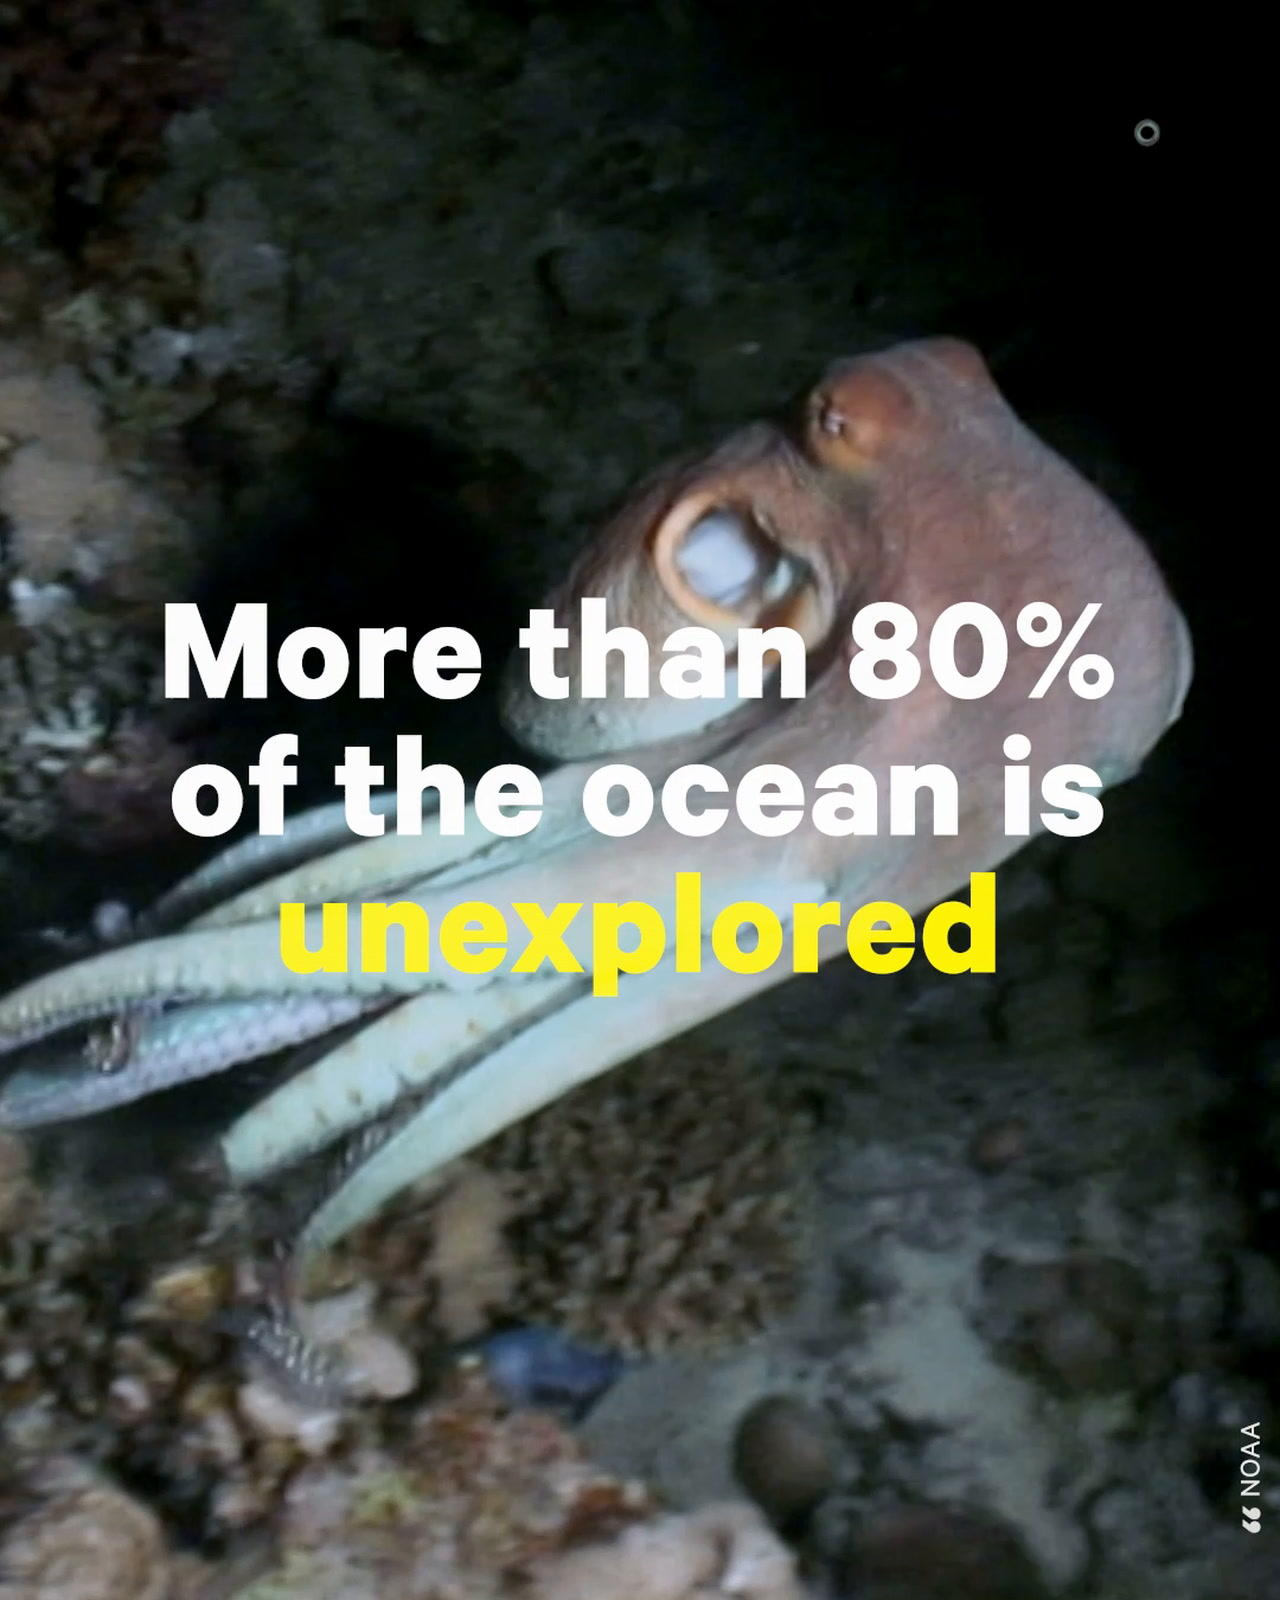 Activist Fights to Stop Deep Seabed Mining